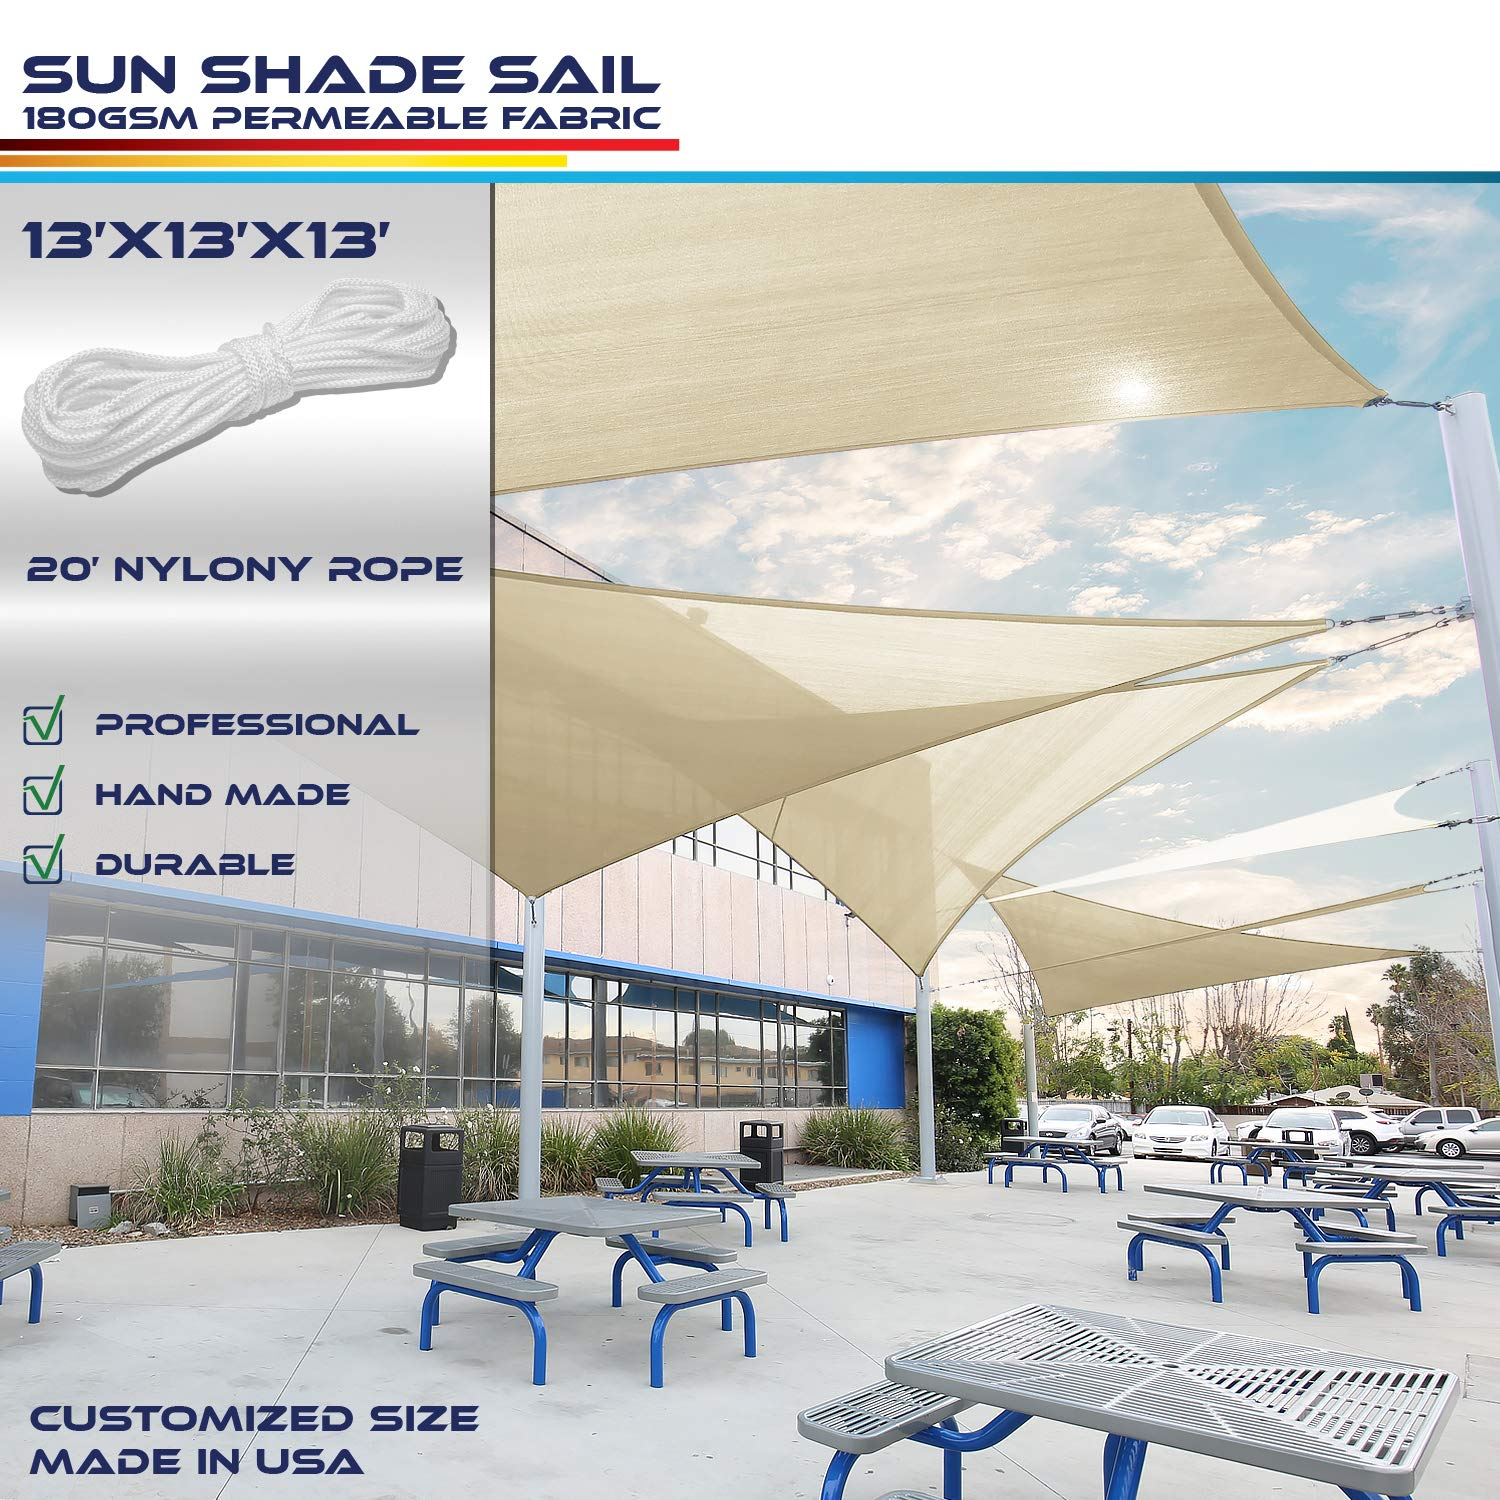 Windscreen4less x 13ft Sun Shade Sail for Outdoor Patio Backyard UV Block Awning with Steel D-Rings Beige Sand Triangle, Custom, 13' x 13' x 13'